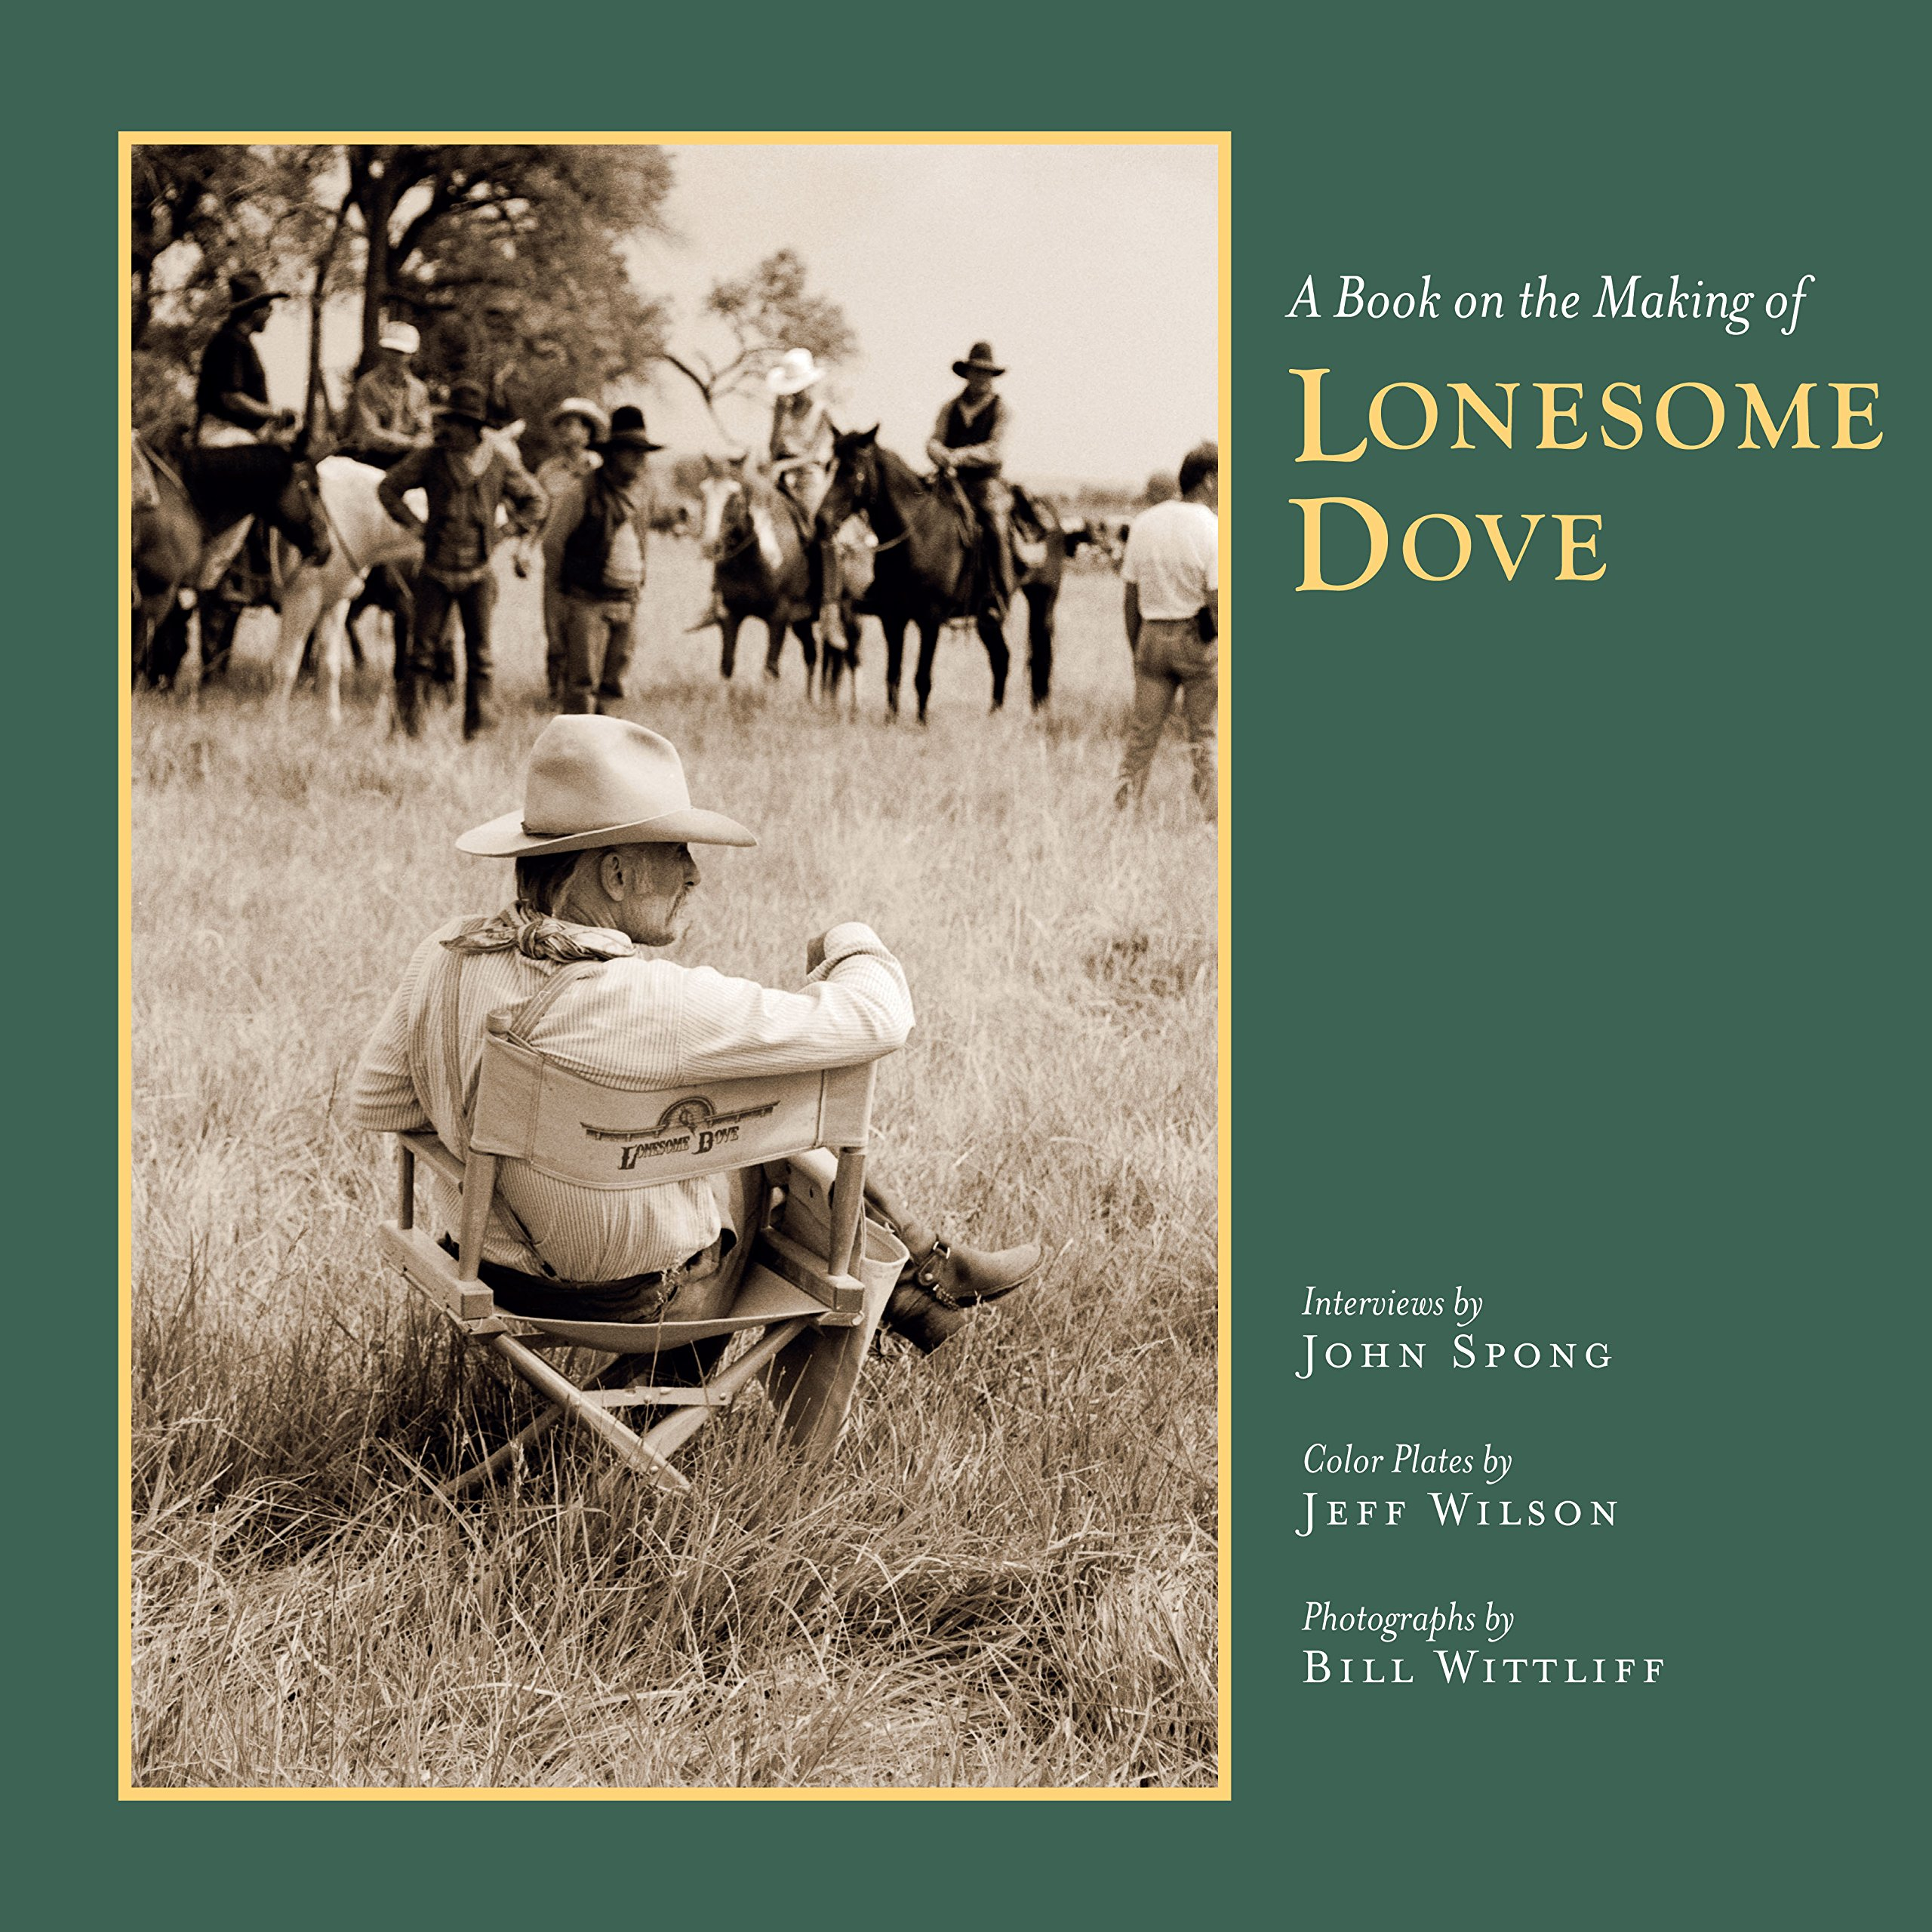 A Book on the Making of Lonesome Dove (Southwestern & Mexican Photography) PDF